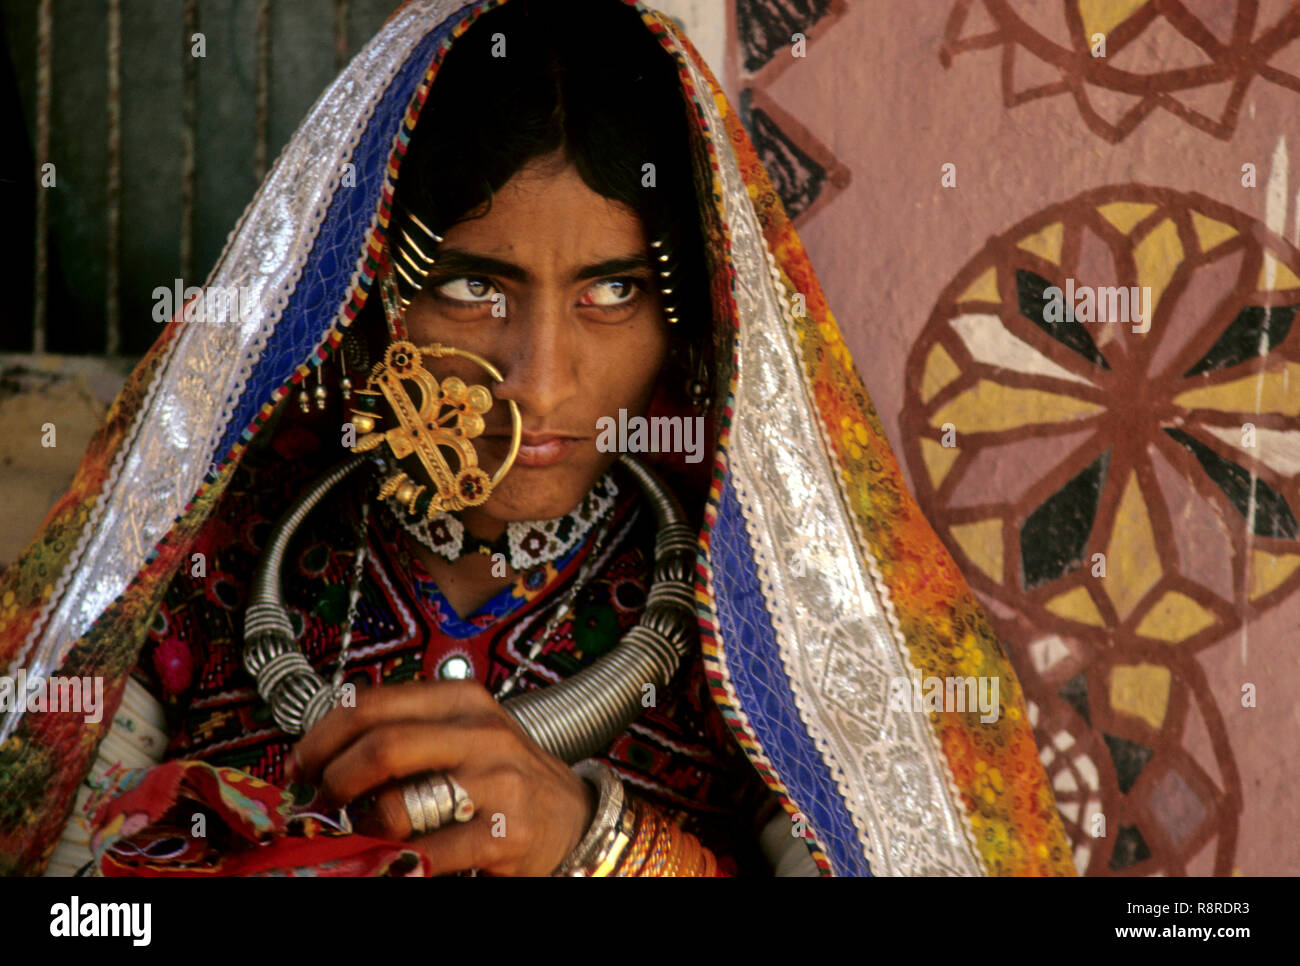 busy with Embroidery work, banmi, kachchh, gujarat, india - Stock Image